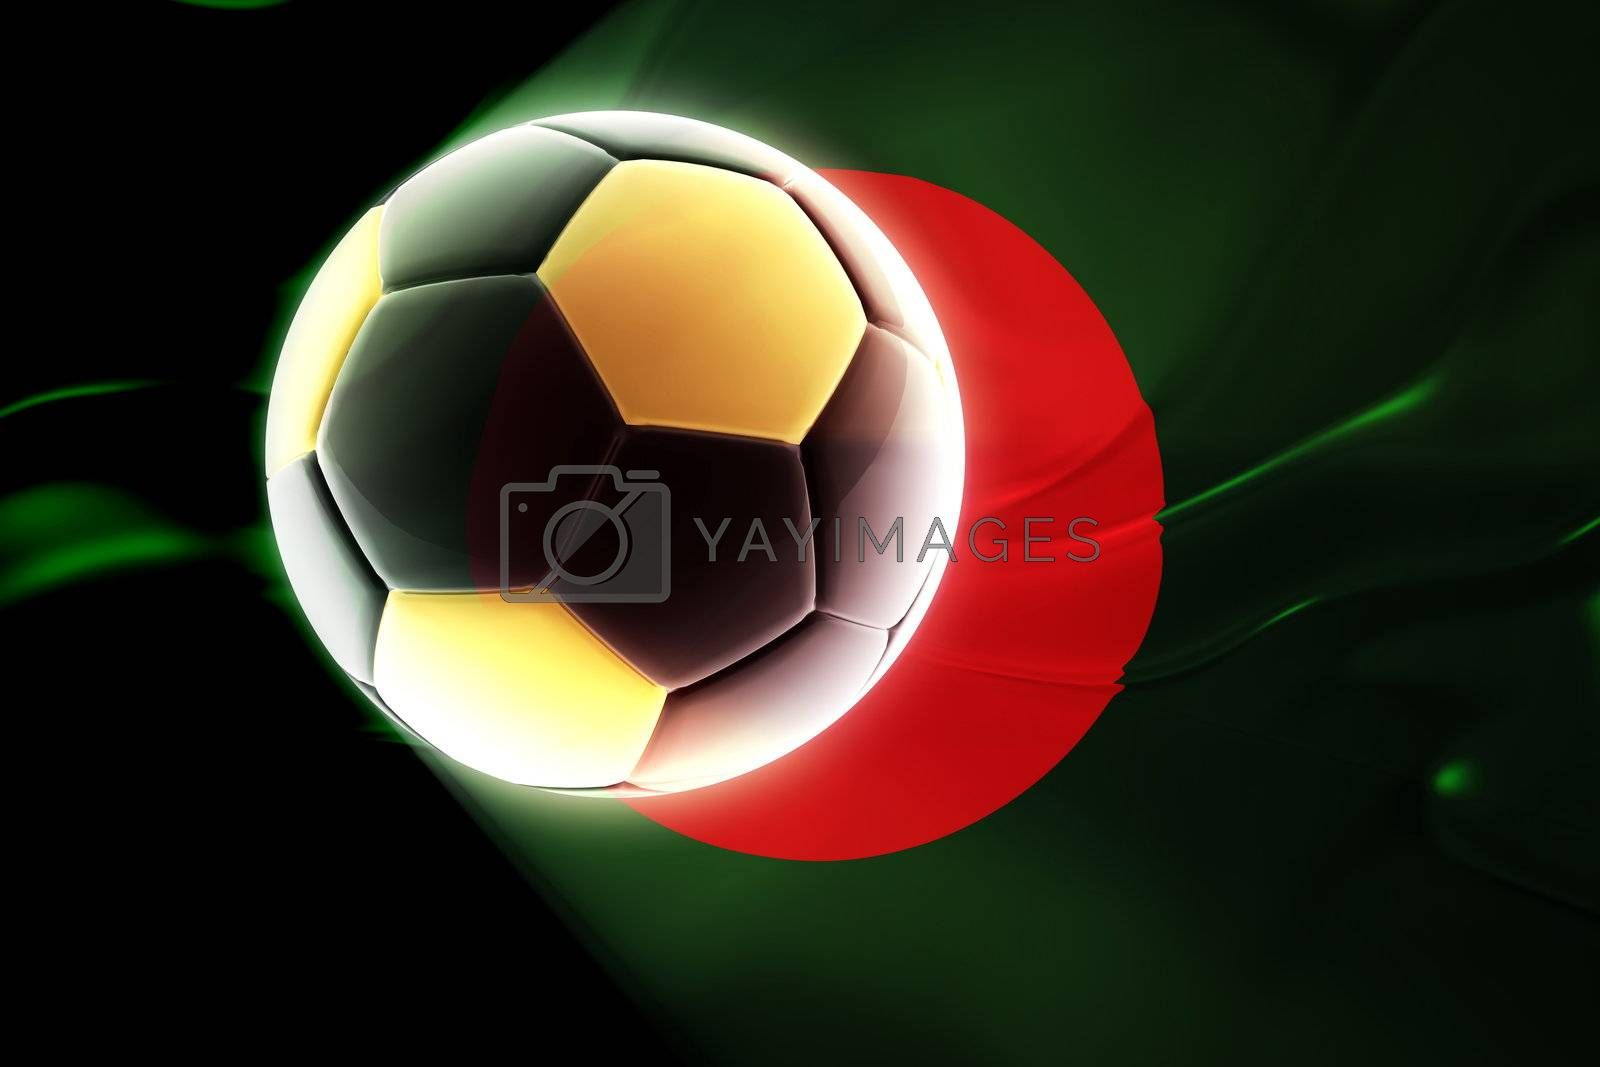 Flag of Bangladesh, national country symbol illustration wavy fabric sports soccer football